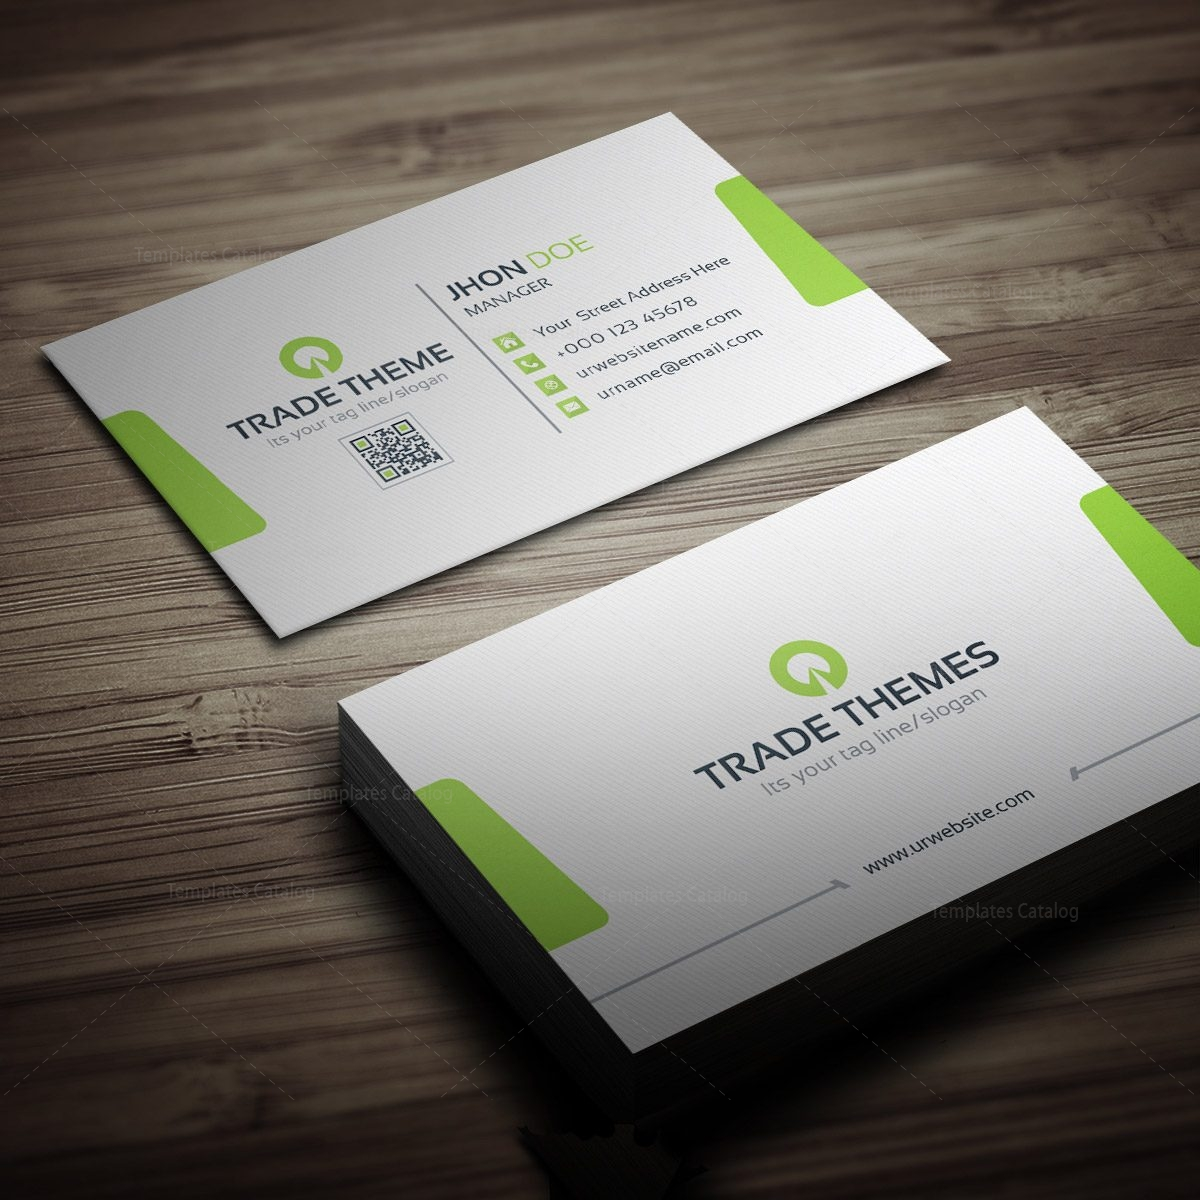 Horseshoeing Business Cards Images - Free Business Cards